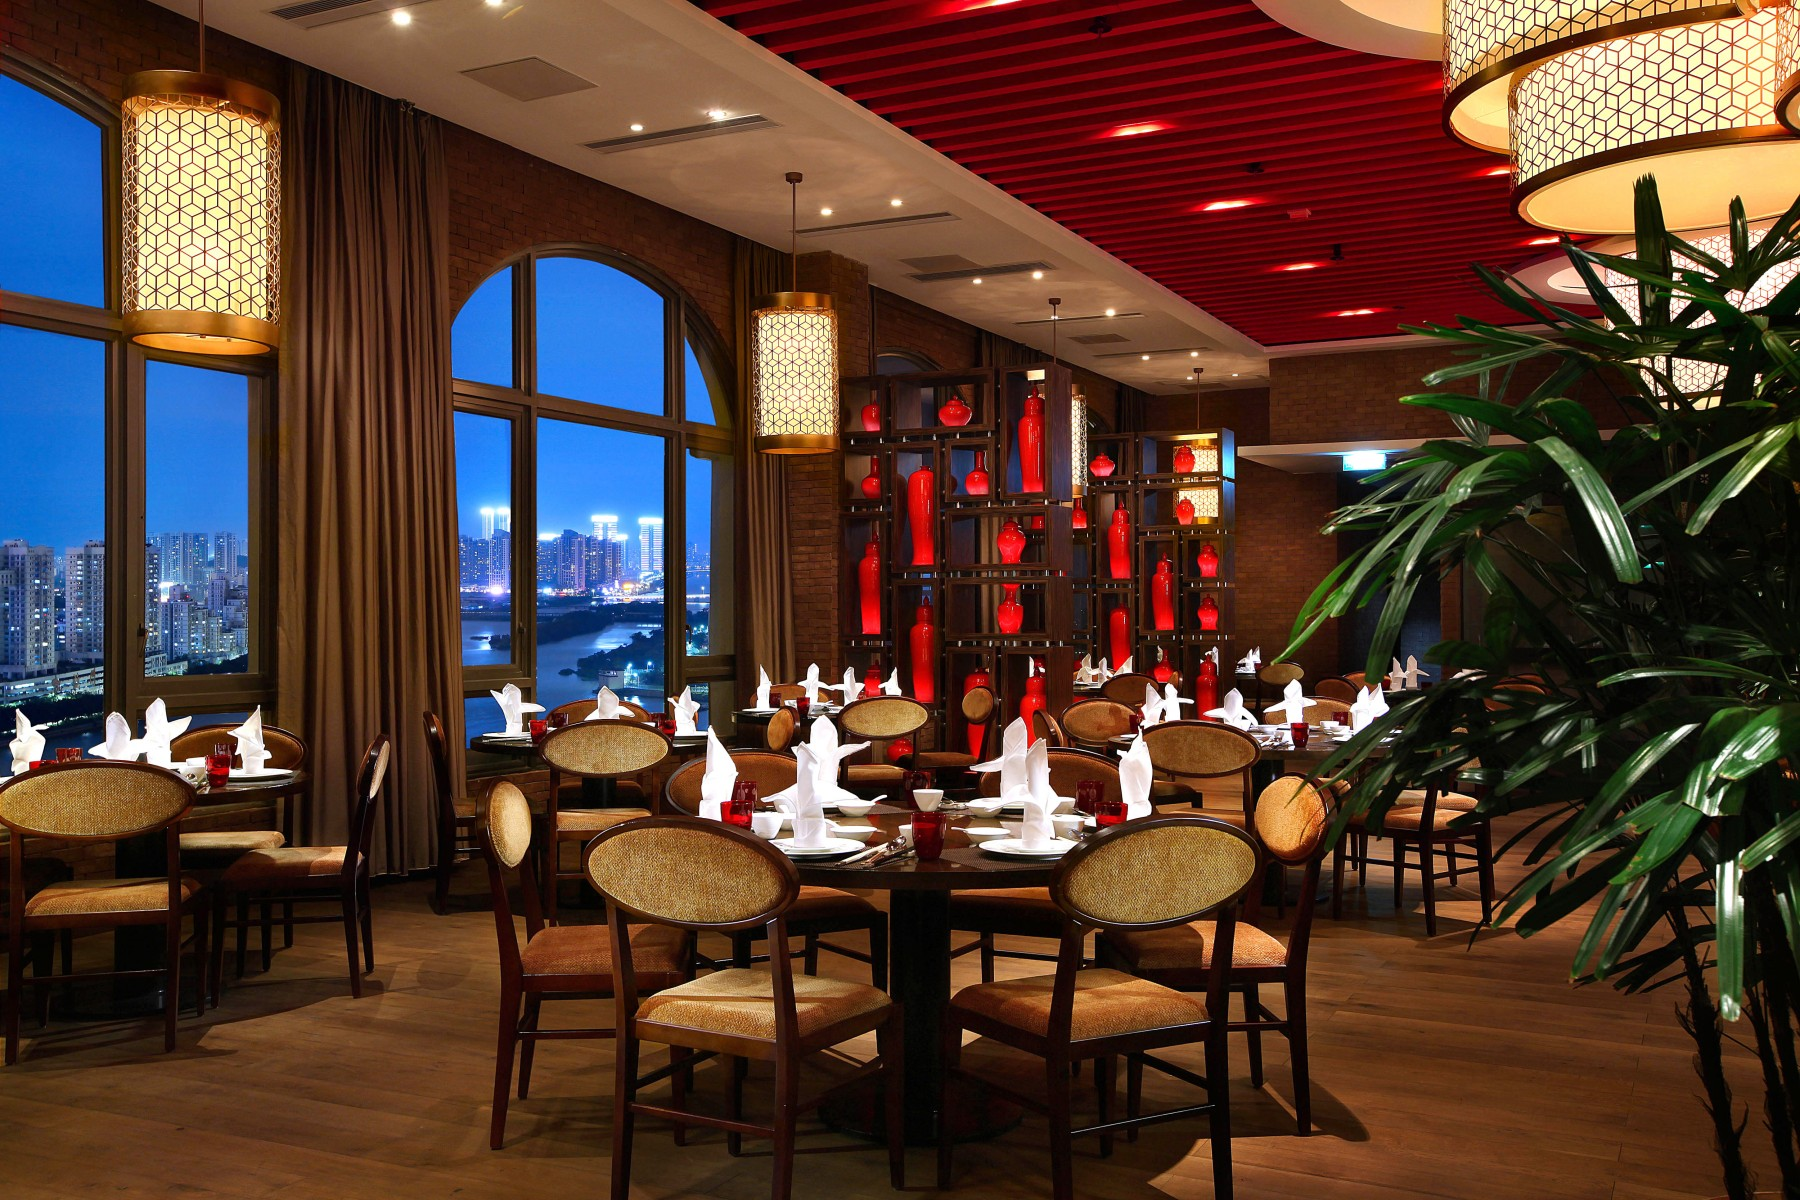 le chinois restaurant sofitel macau at ponte 16 5 star hotel. Black Bedroom Furniture Sets. Home Design Ideas